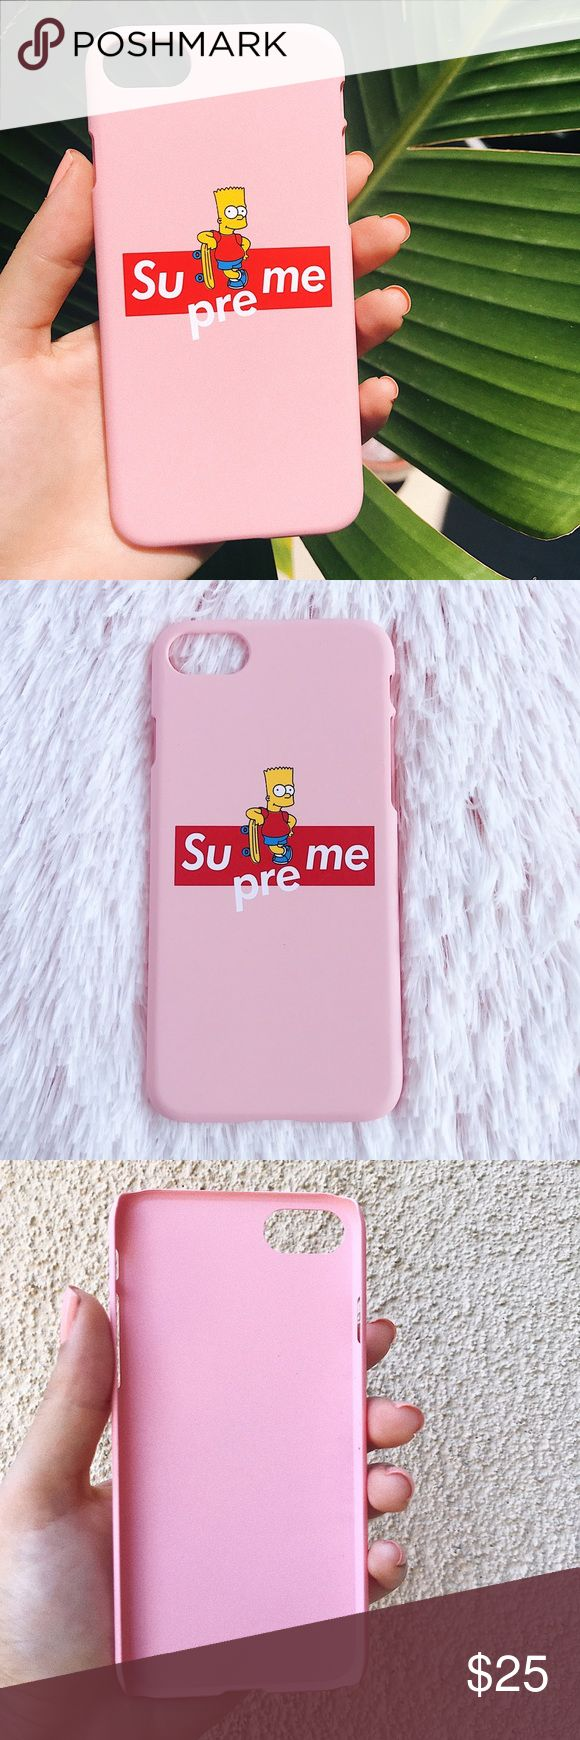 Bart simpson supreme iphone 7 case Brand new! Bart simpson supreme case matte finish plastic and snaps on   ⭐️Bundle & Save!⭐️ Comes with free stickers ️️ Accepted ! ✅Dpop, PP,  I ship same day or next day I don't ship sat after 12pm or sunday ❌lowball offers will be declined no trades! Supreme Accessories Phone Cases